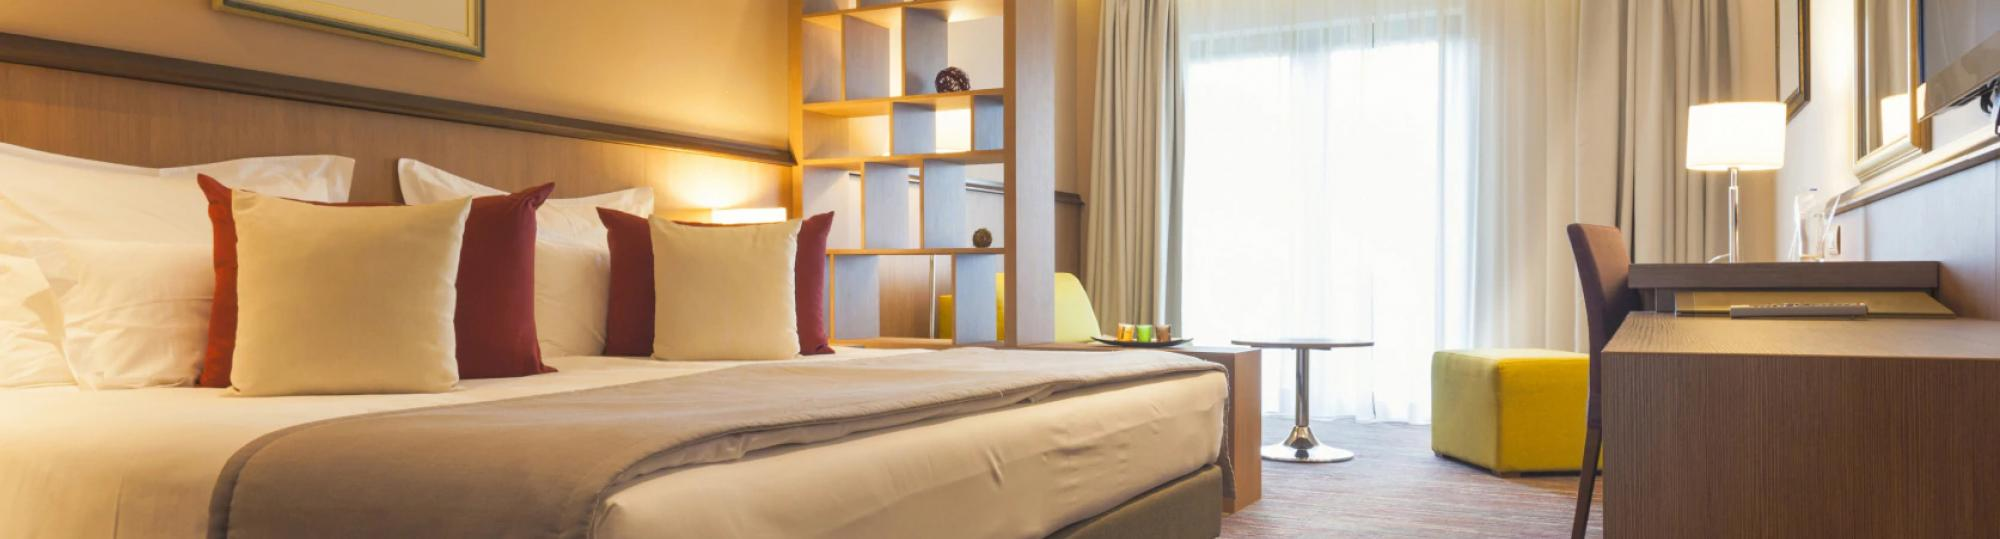 OYO Hotels Military Discount